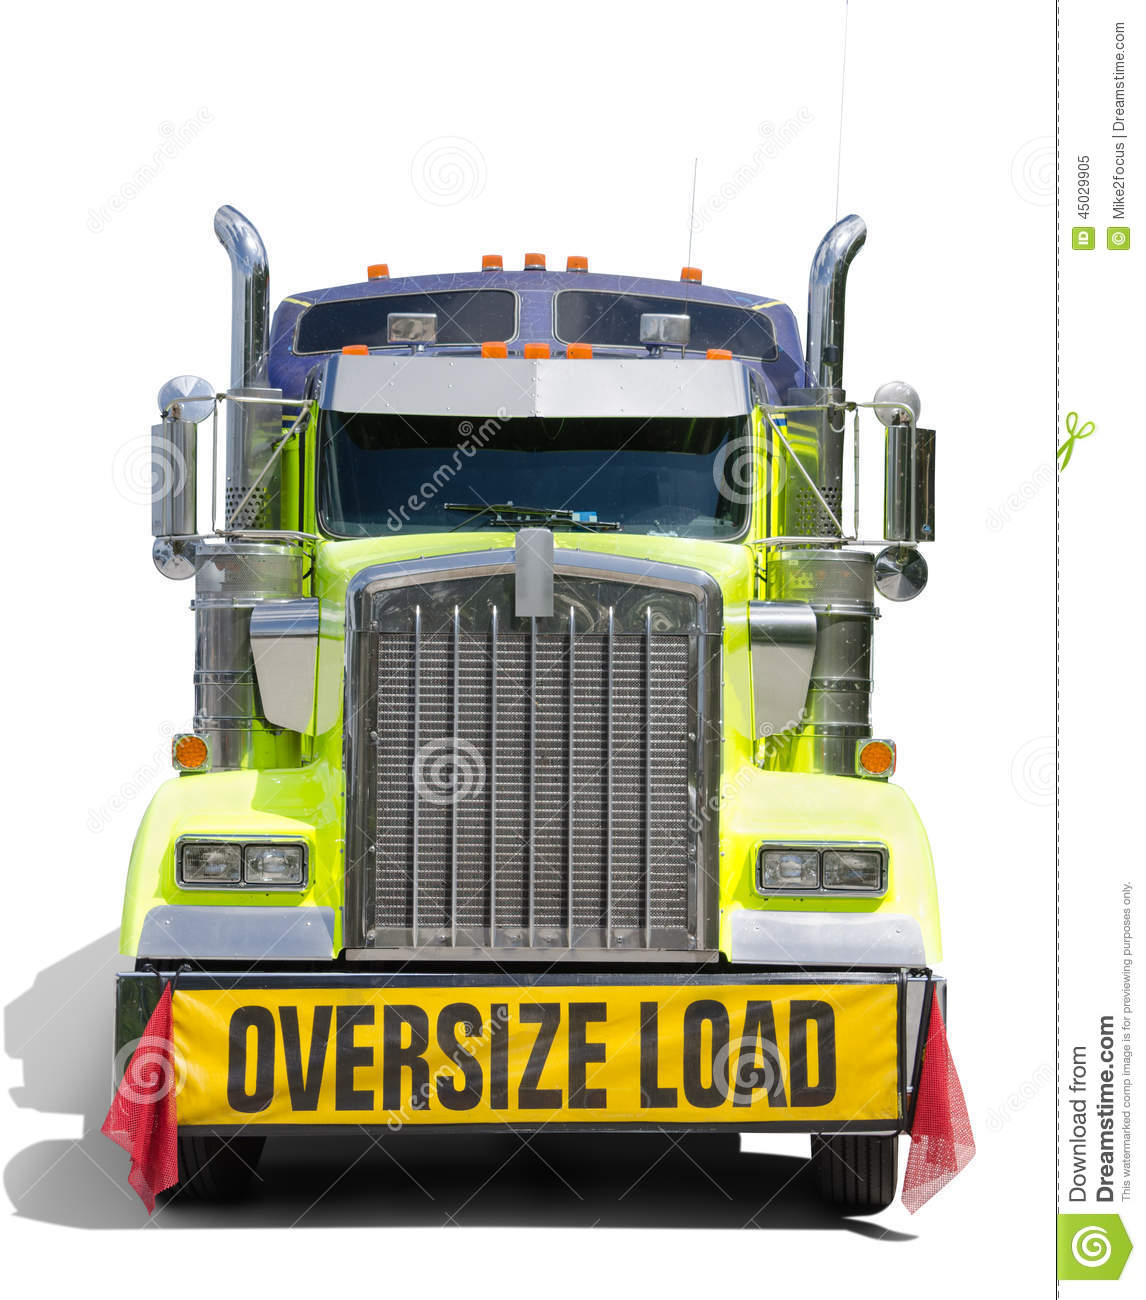 Tractor Front Grill Clip Art : Wide oversize load sign semi tractor truck isolated stock